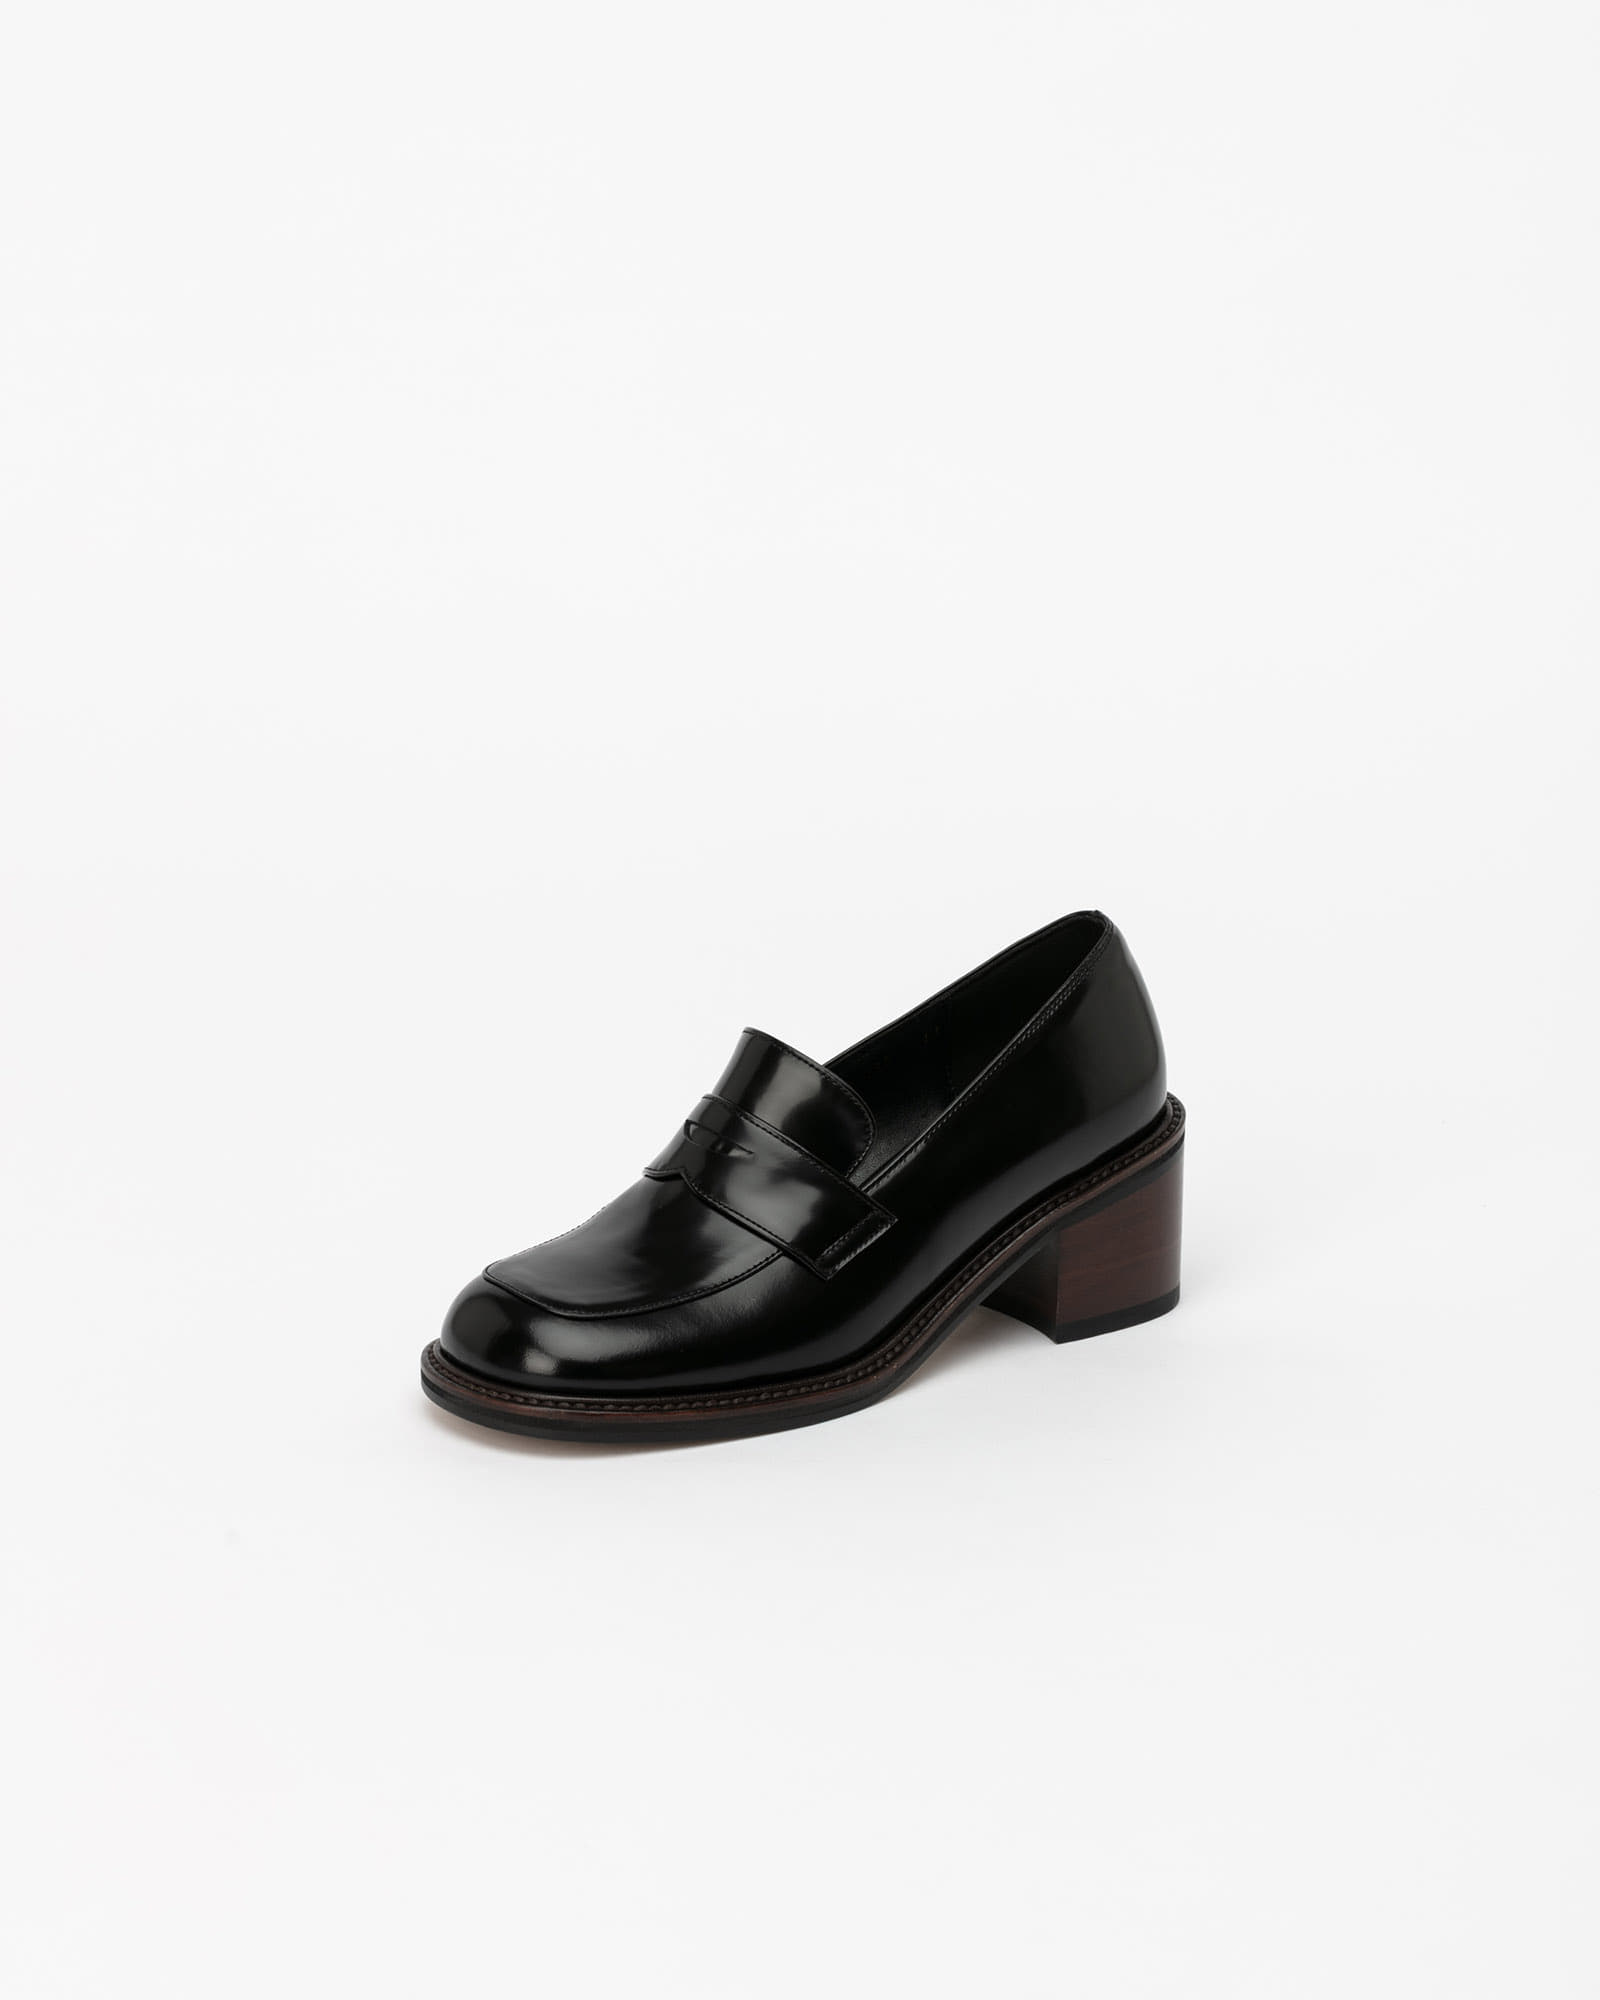 Le Ban Saint Loafers in Black